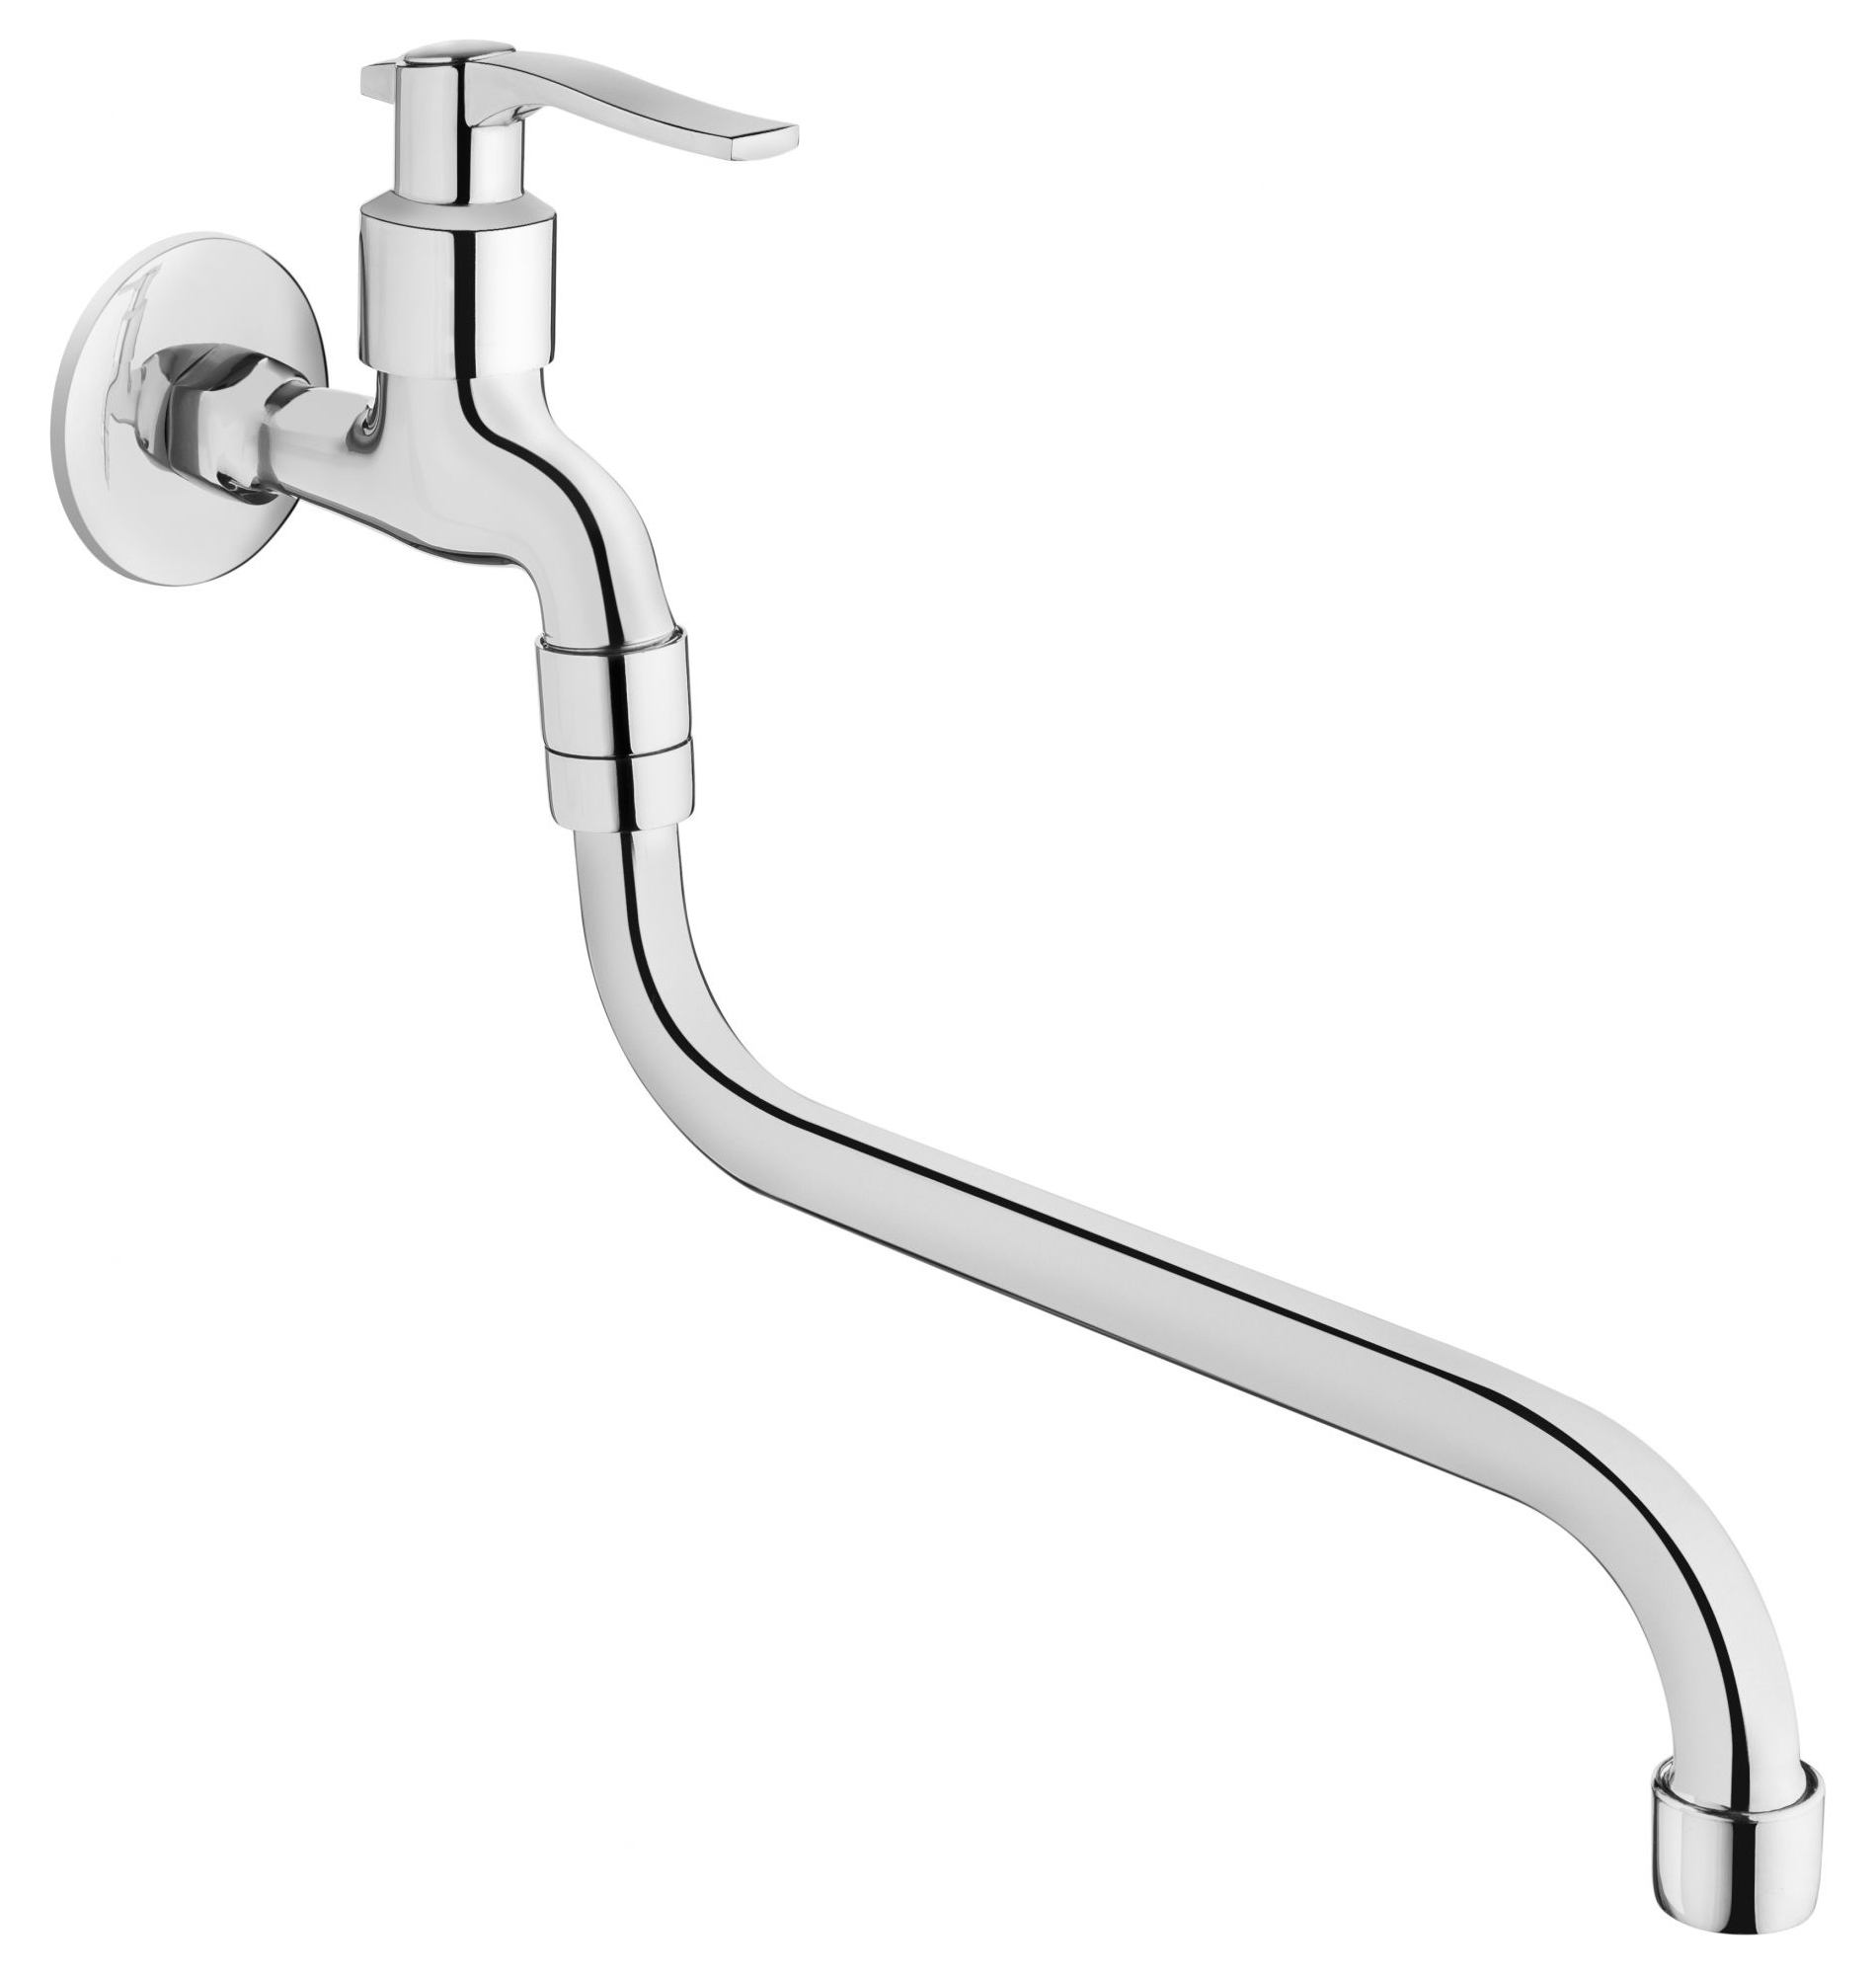 1/2 Inch Water Garden Outdoor Tap Chrome Plated with Very Long Spout